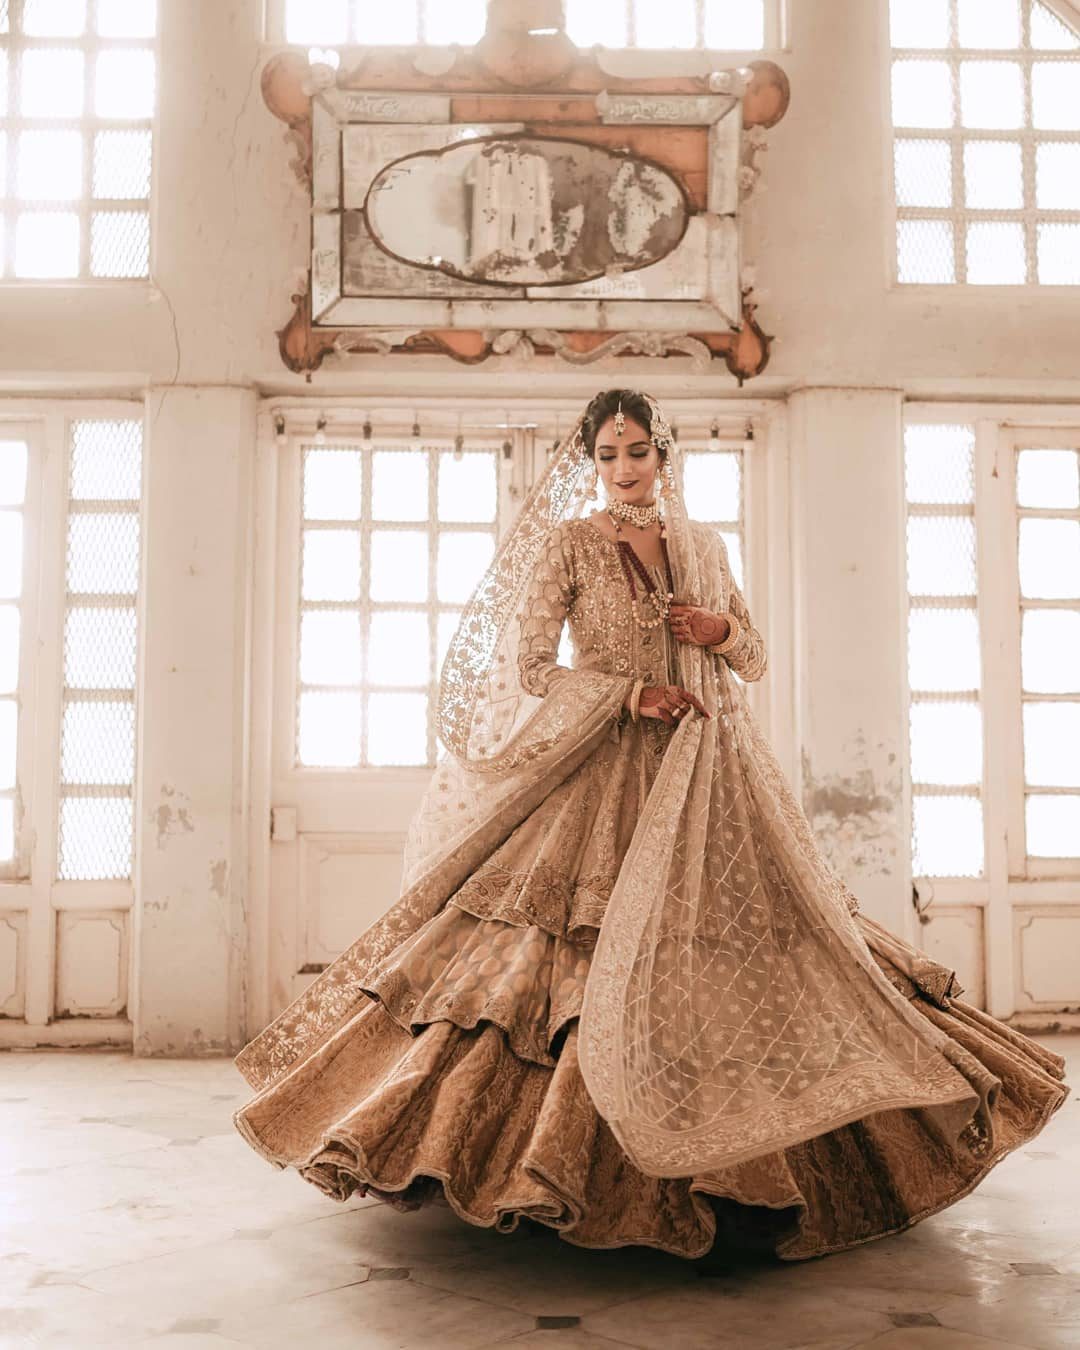 Muslim bridal outfit in gold color